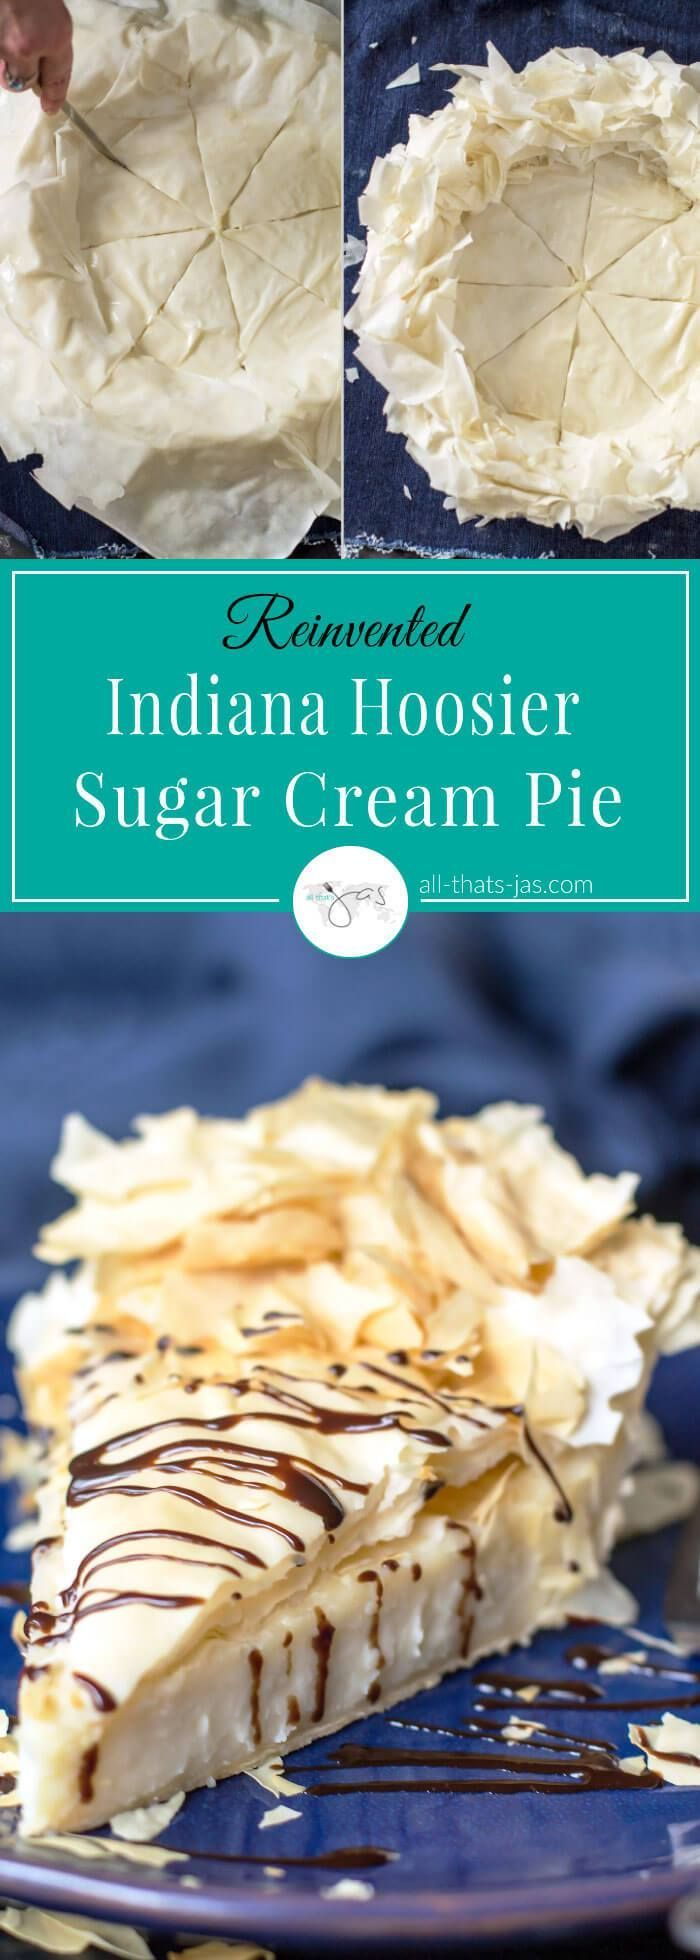 This eggless sugar cream pie has a rich custard filling, mild flavor, and it can be enjoyed warm or cold. It's reinvented by using ruffled fillo pastry as a crust which gives a perfect crunch. It is a State of Indiana national pie, aka Hoosier pie. This pie is also popular in Bosnia under the name of Krempita.